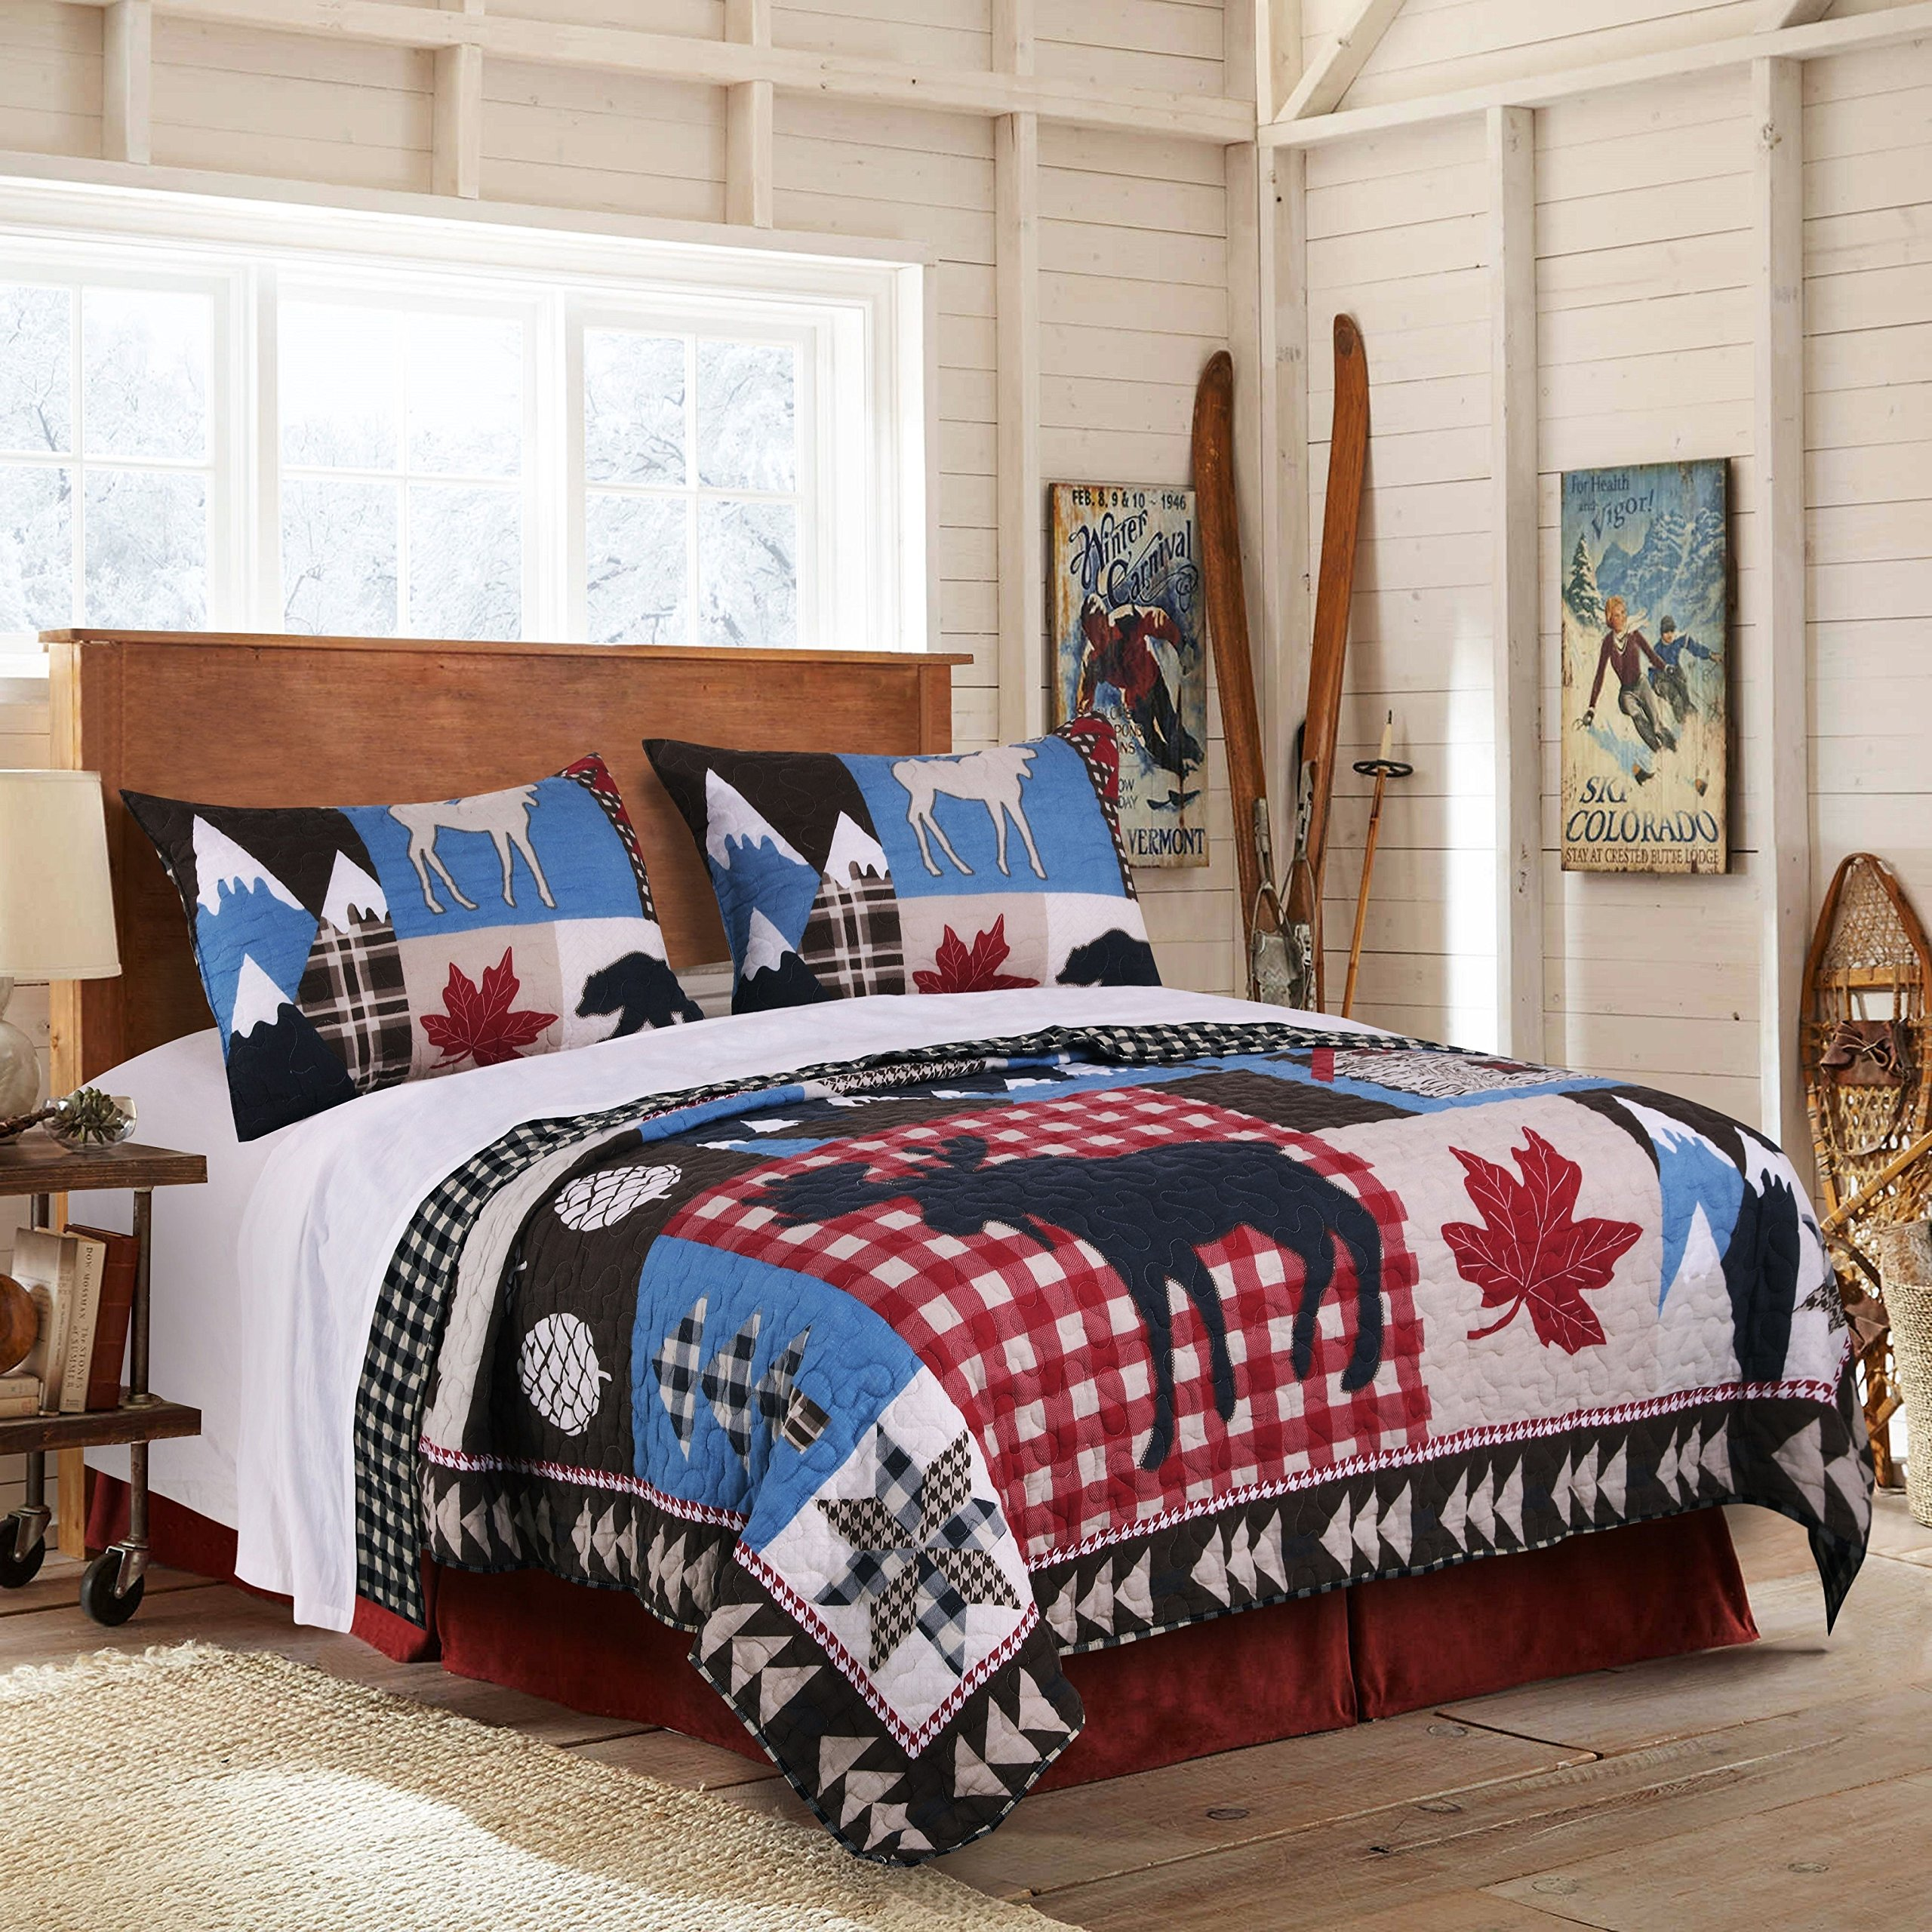 3 Piece Blue White Red Black Hunting Themed Quilt King Set, Black Bear Bedding Moose Plaid Log Cabin Pattern Lodge Leaf Mountains Snow Capped, Wilderness Wild Animals, Reversible Microfiber Polyester